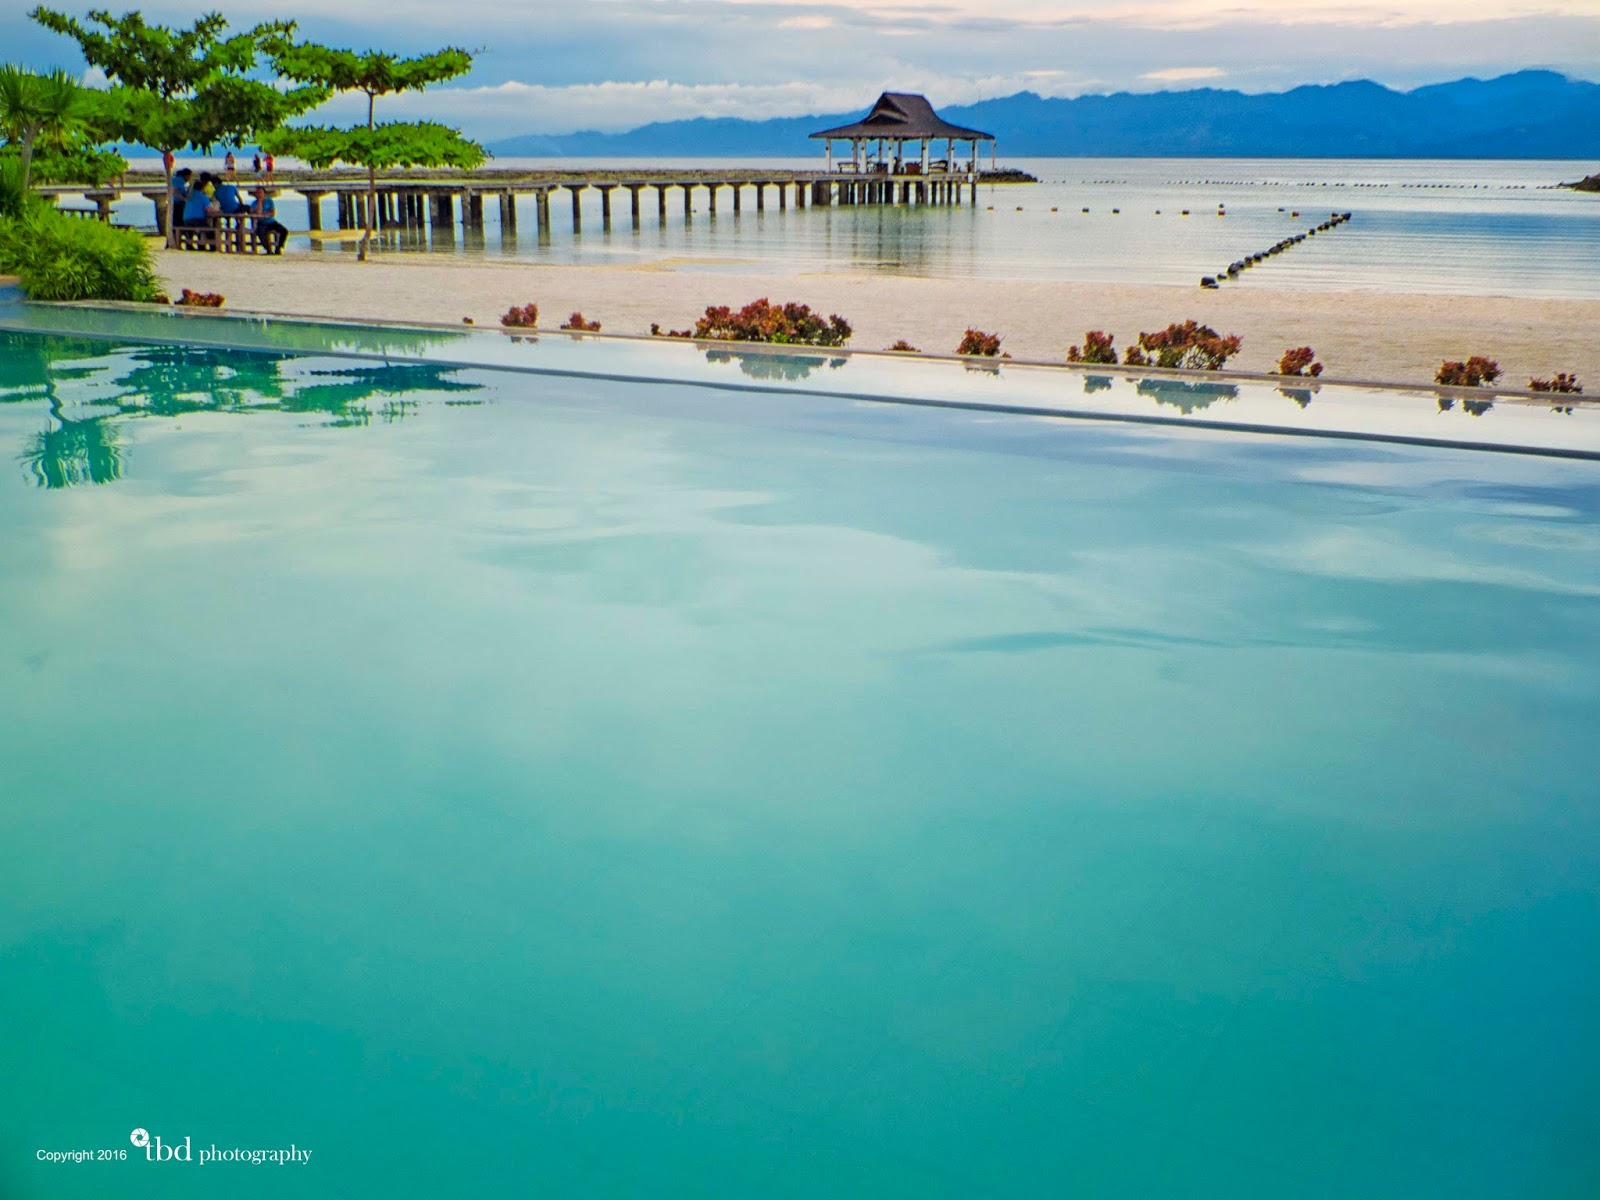 Infinity Pool With The Scenic Ocean And Mountains In Background At Secdea